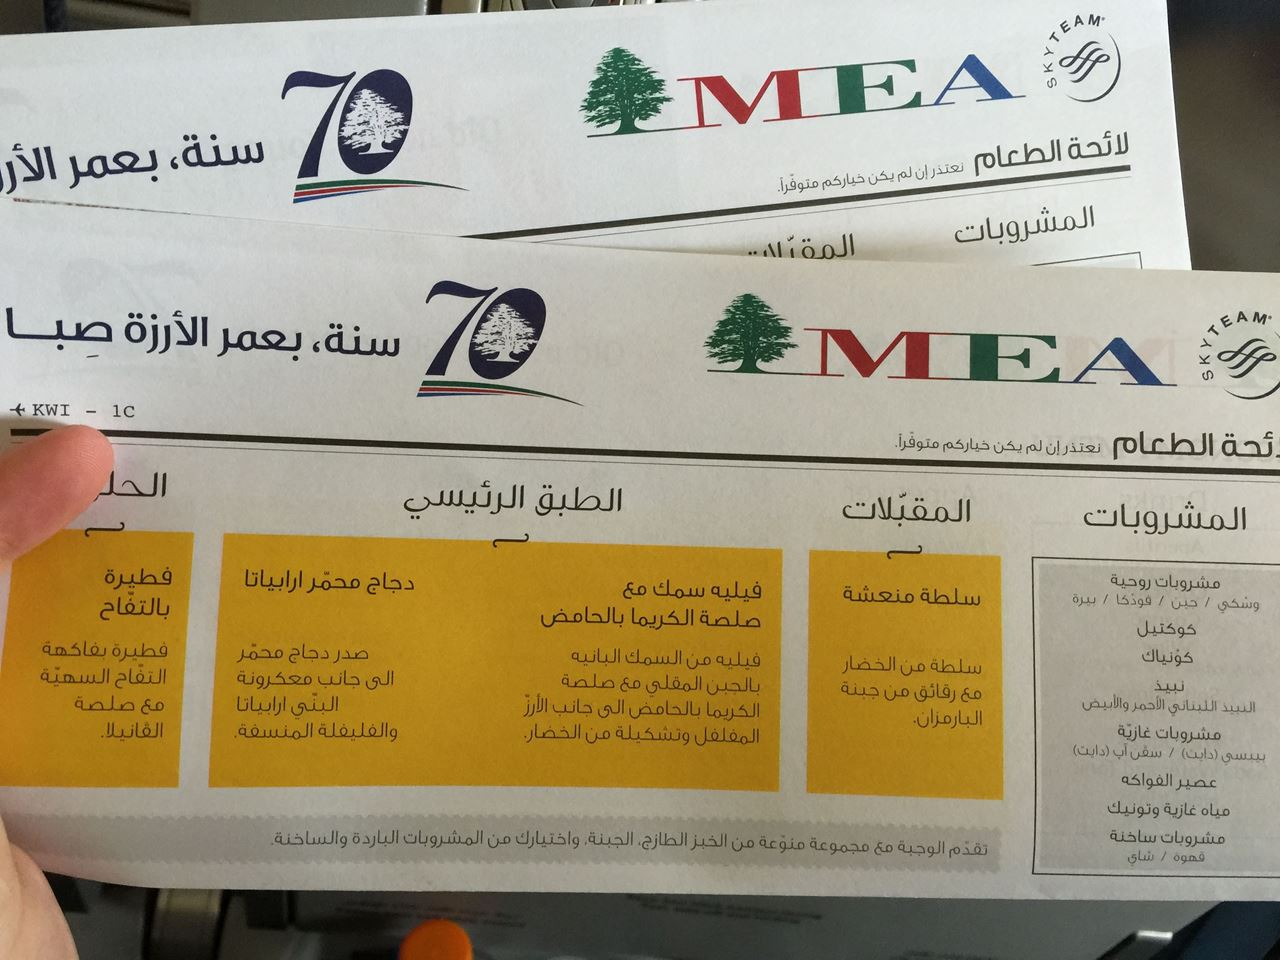 Our roundtrip with the Middle East Airlines MEA